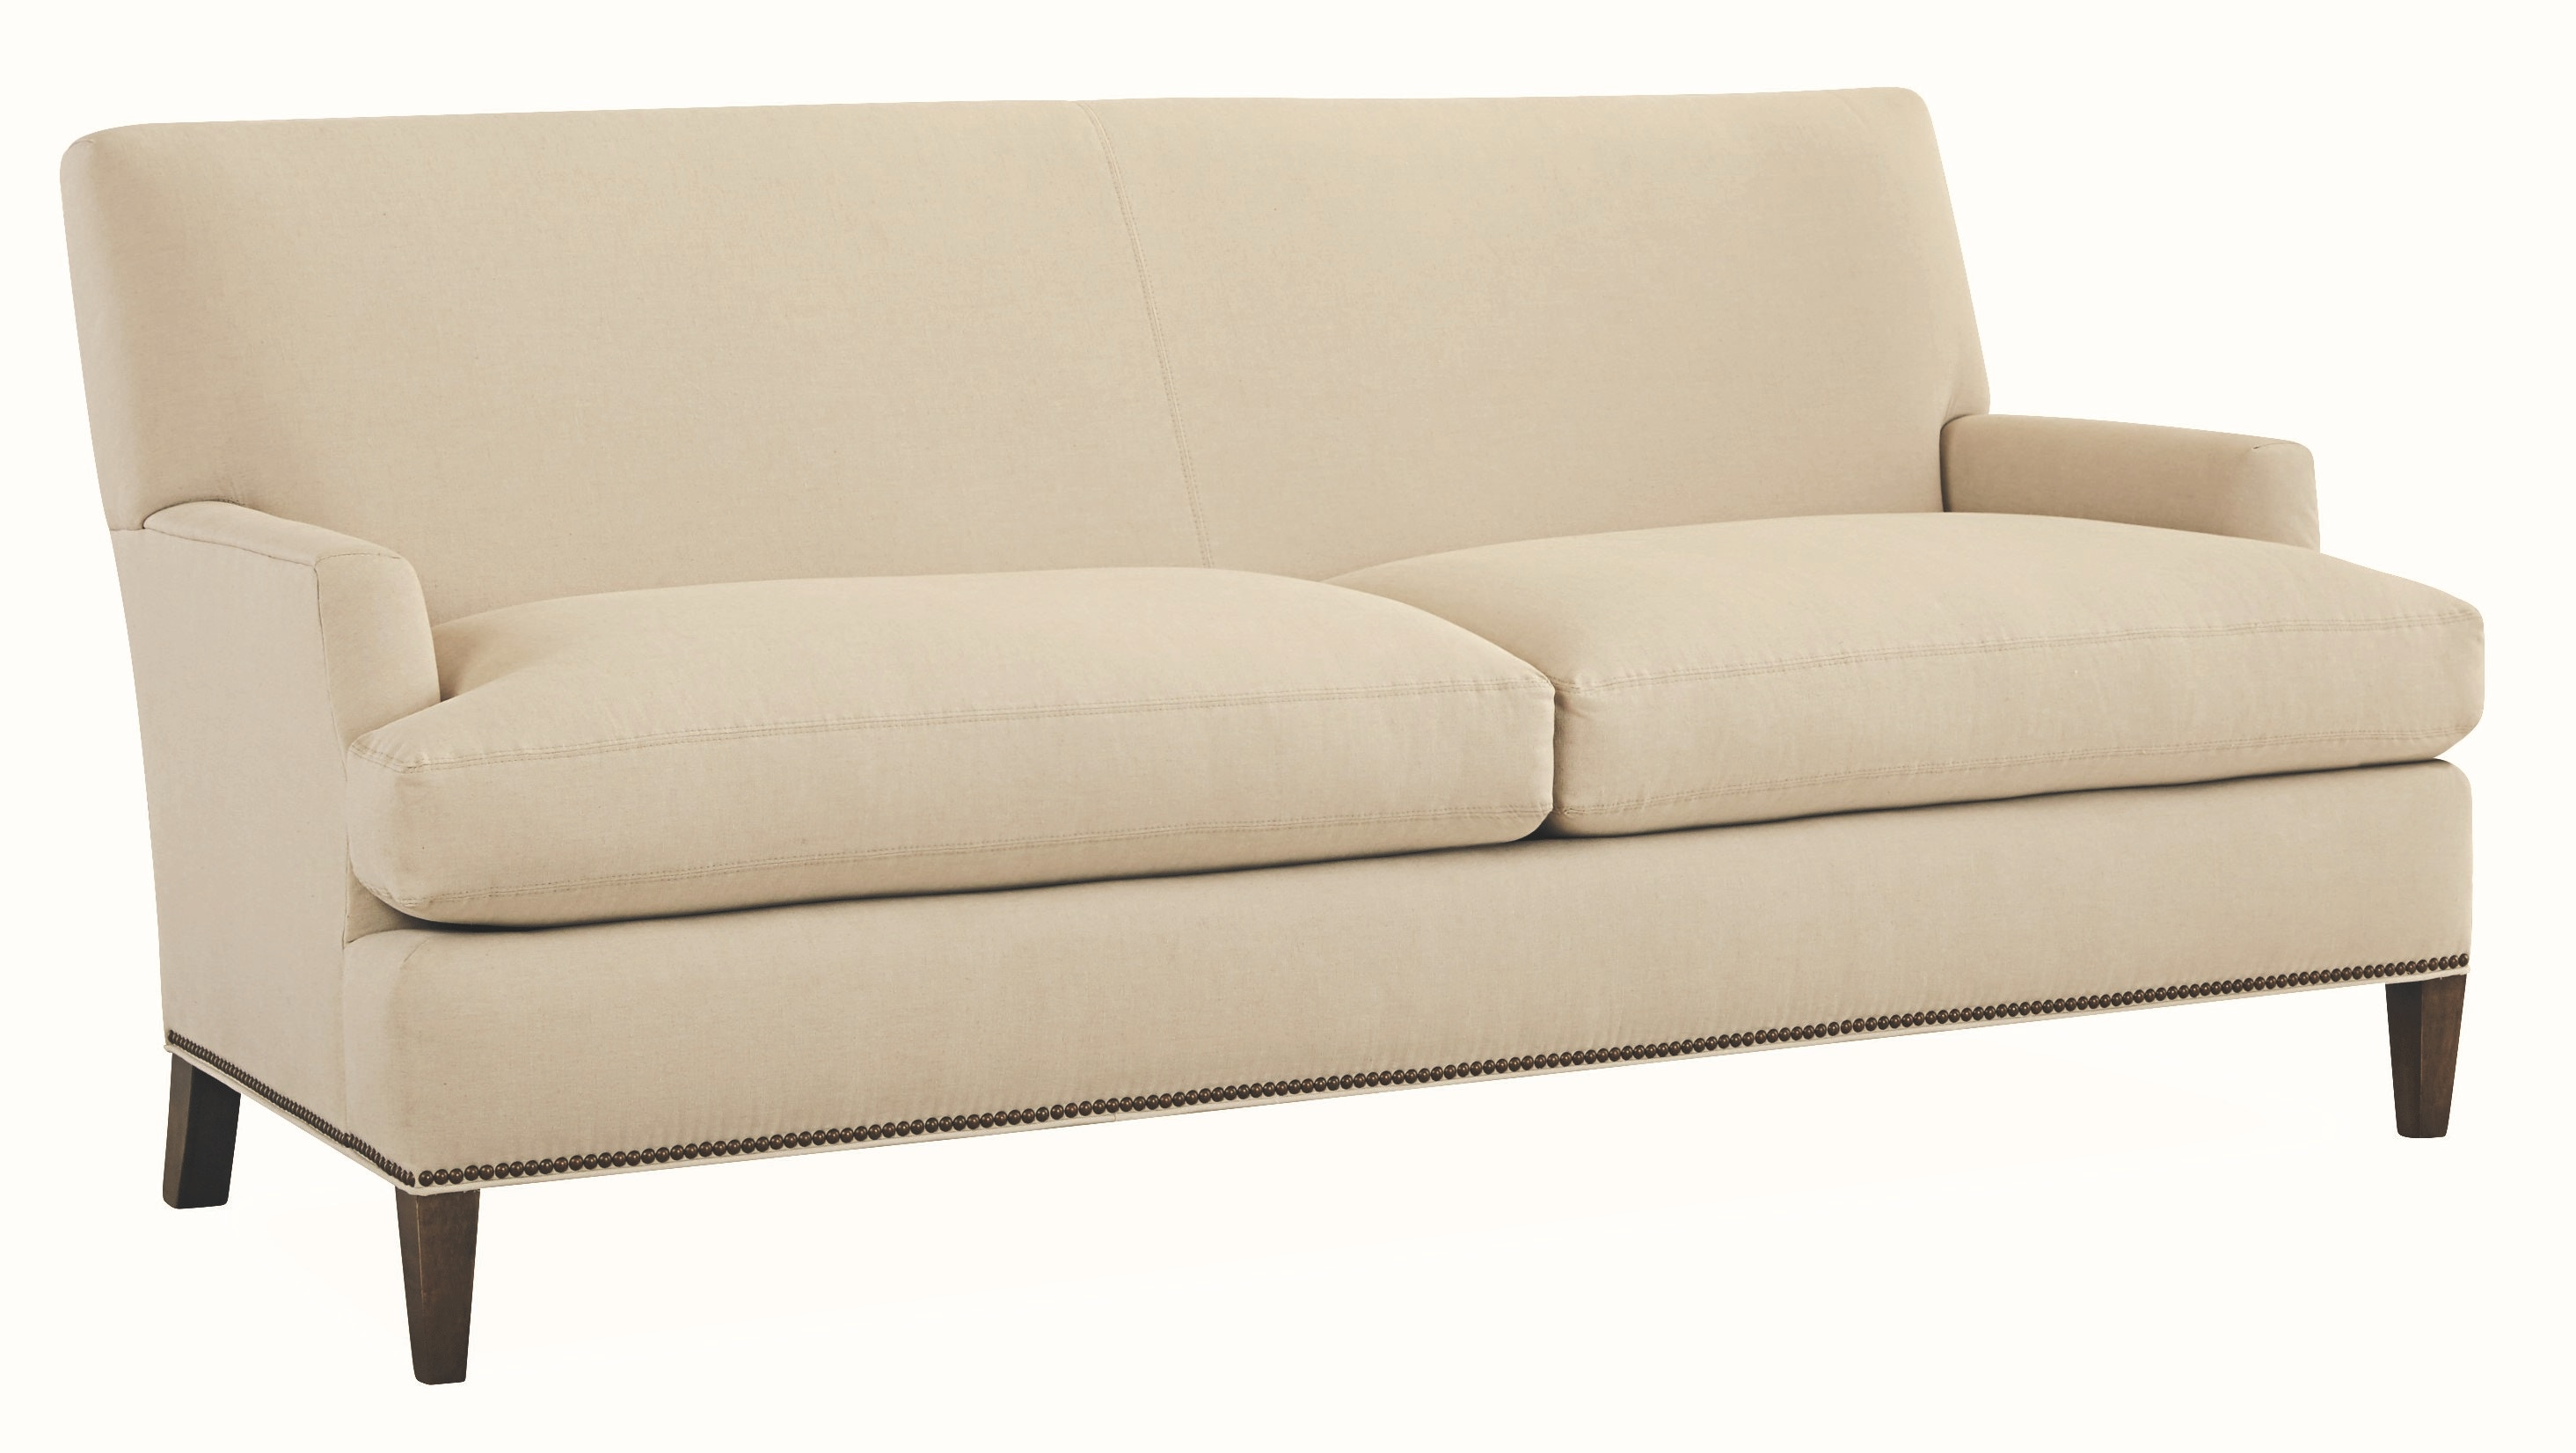 lee industries sofa prices extra large cushions living room apartment 1354 11 toms